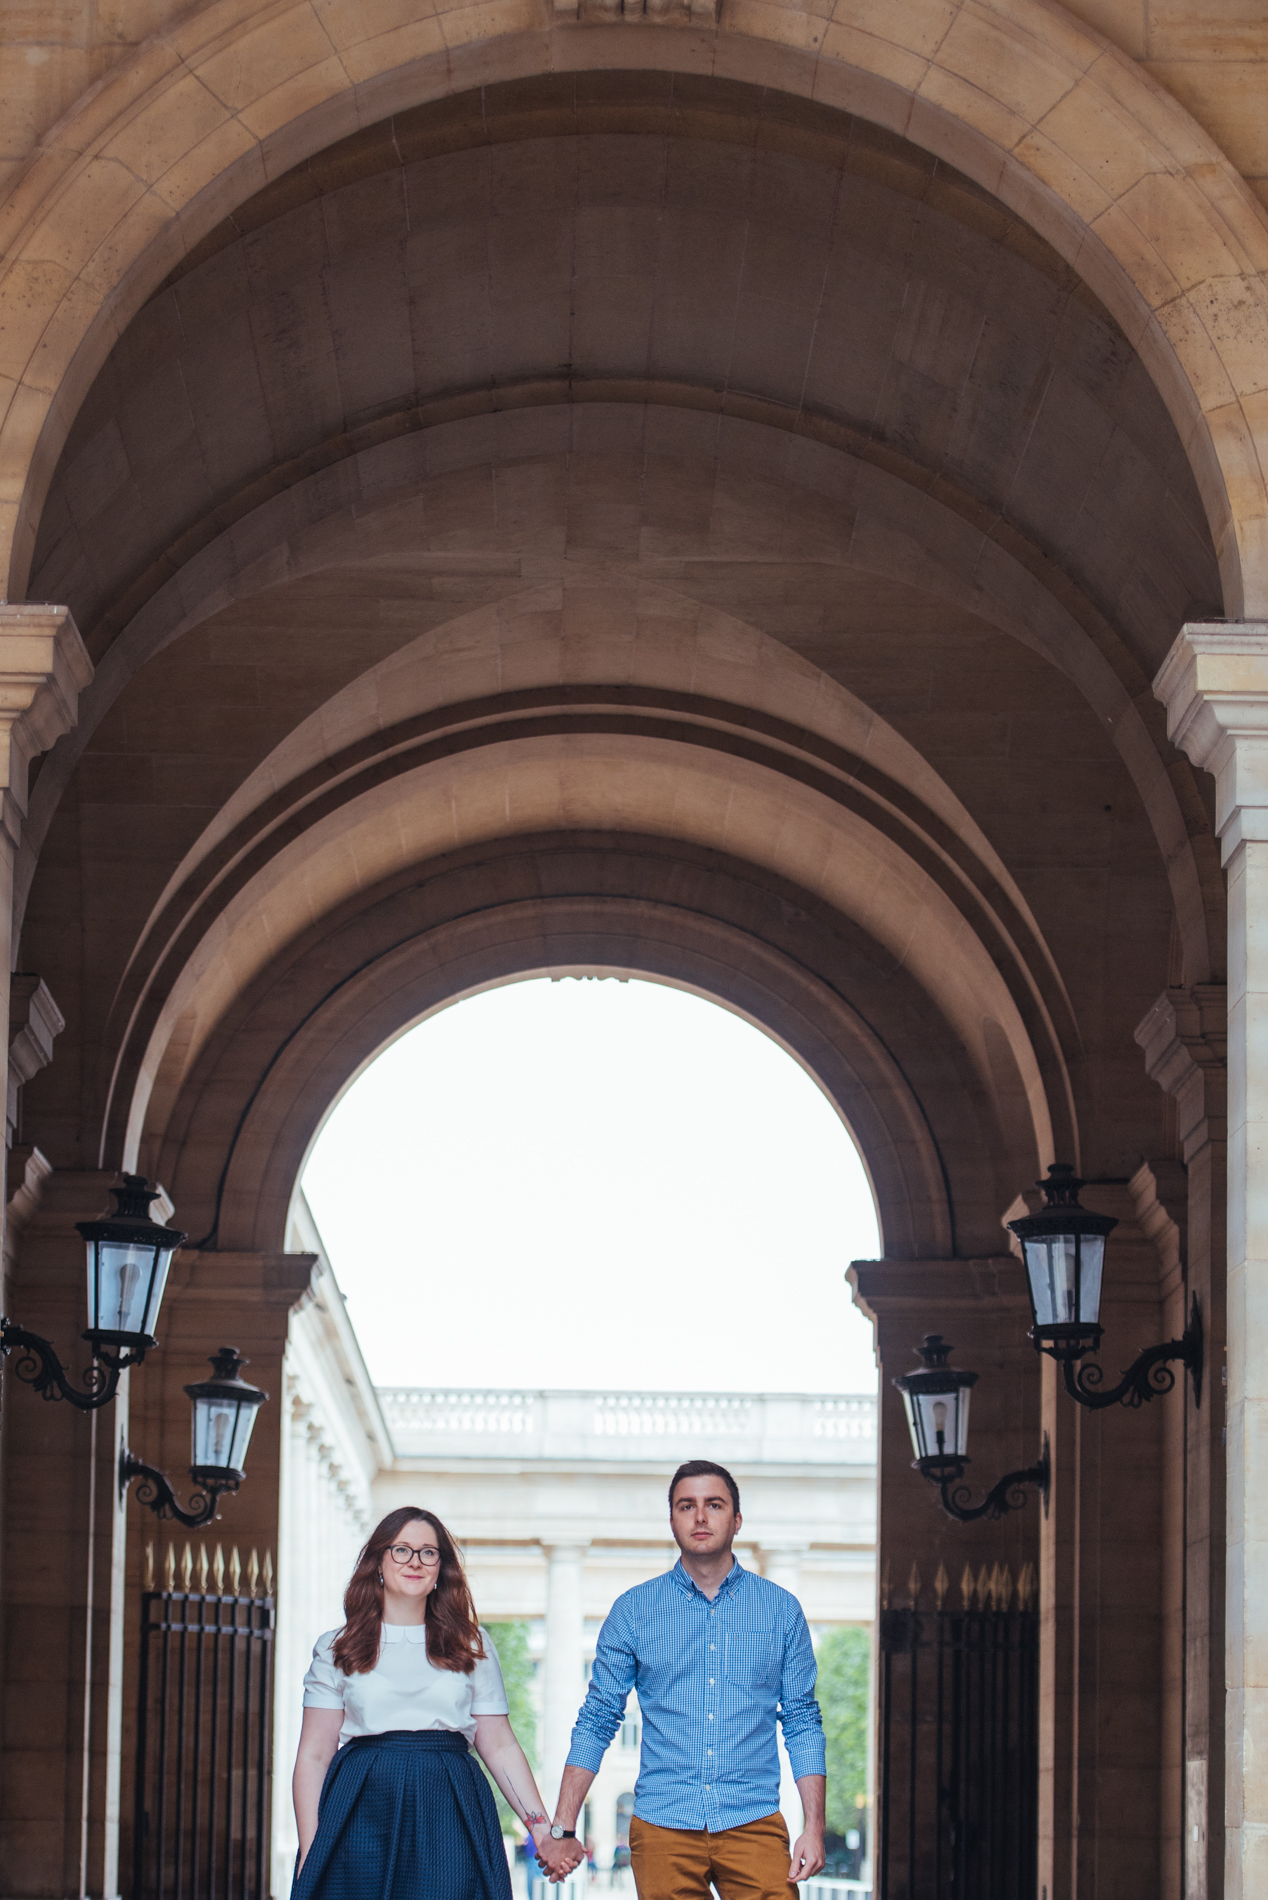 seance-engagement-paris-maldeme-photographe-palais royal-1